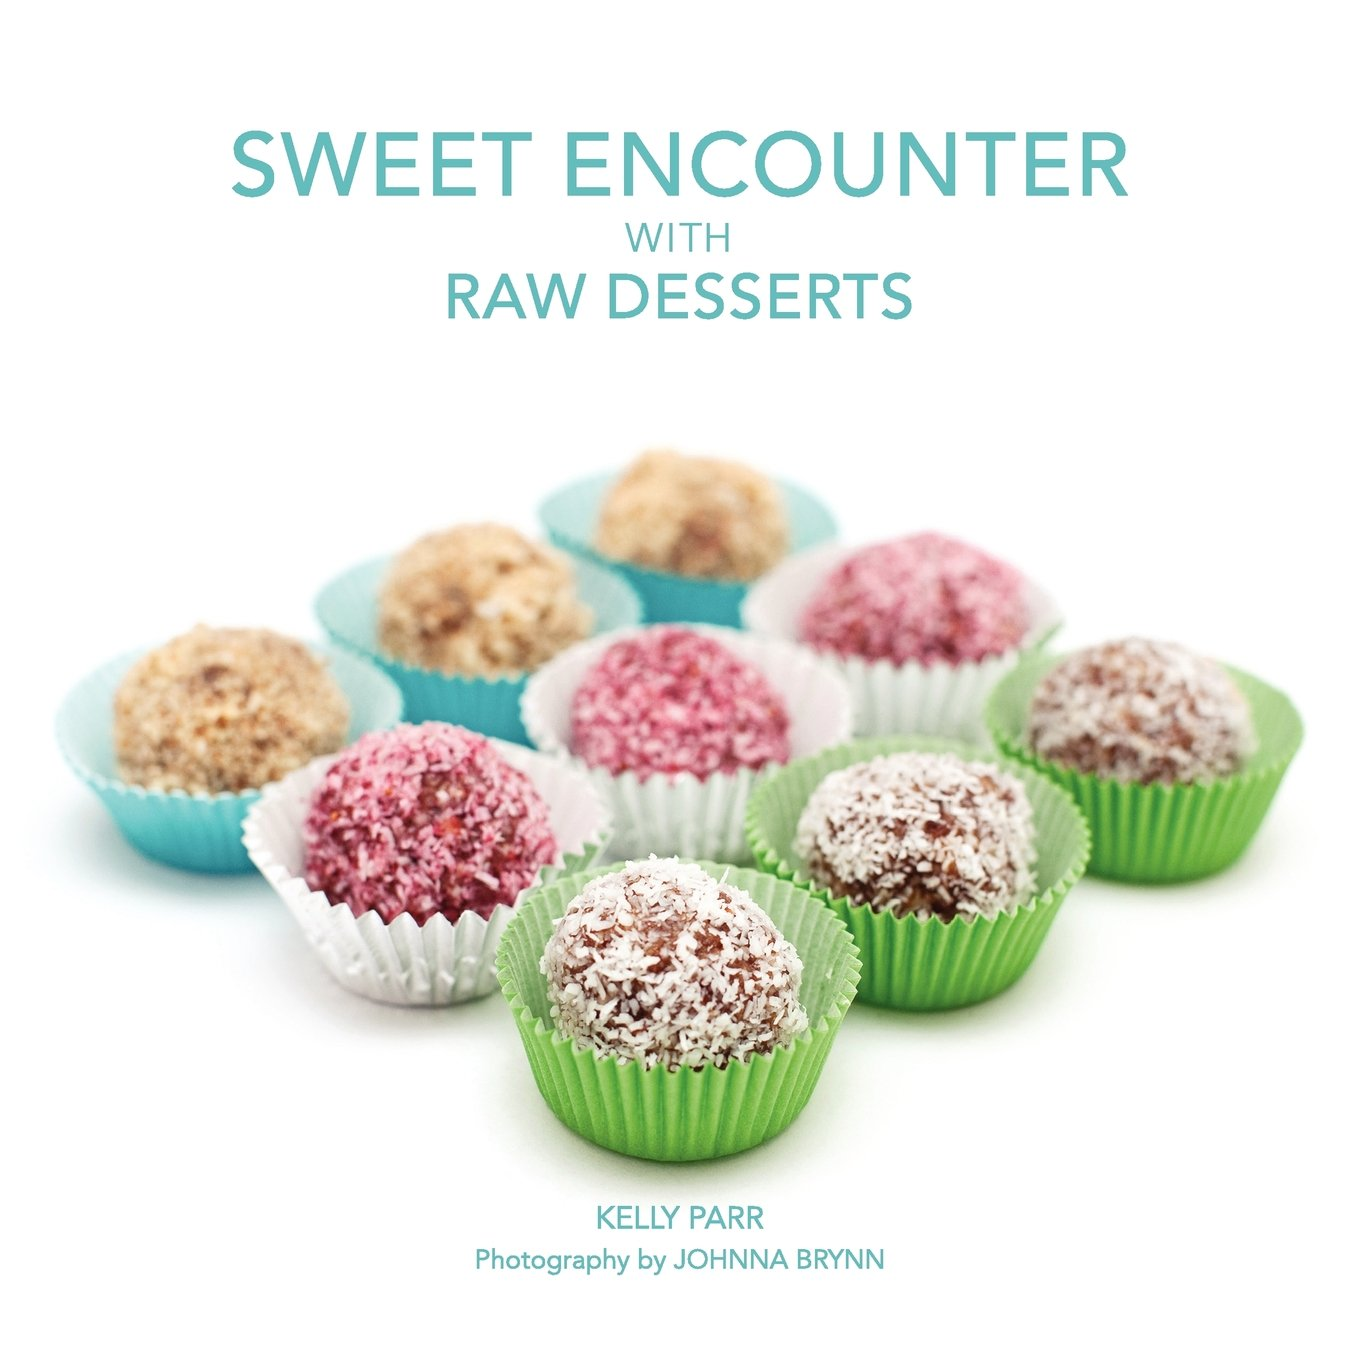 Sweet encounter with raw desserts kelly parr johnna brynn sharon sweet encounter with raw desserts kelly parr johnna brynn sharon dailey 9780982837979 amazon books forumfinder Choice Image